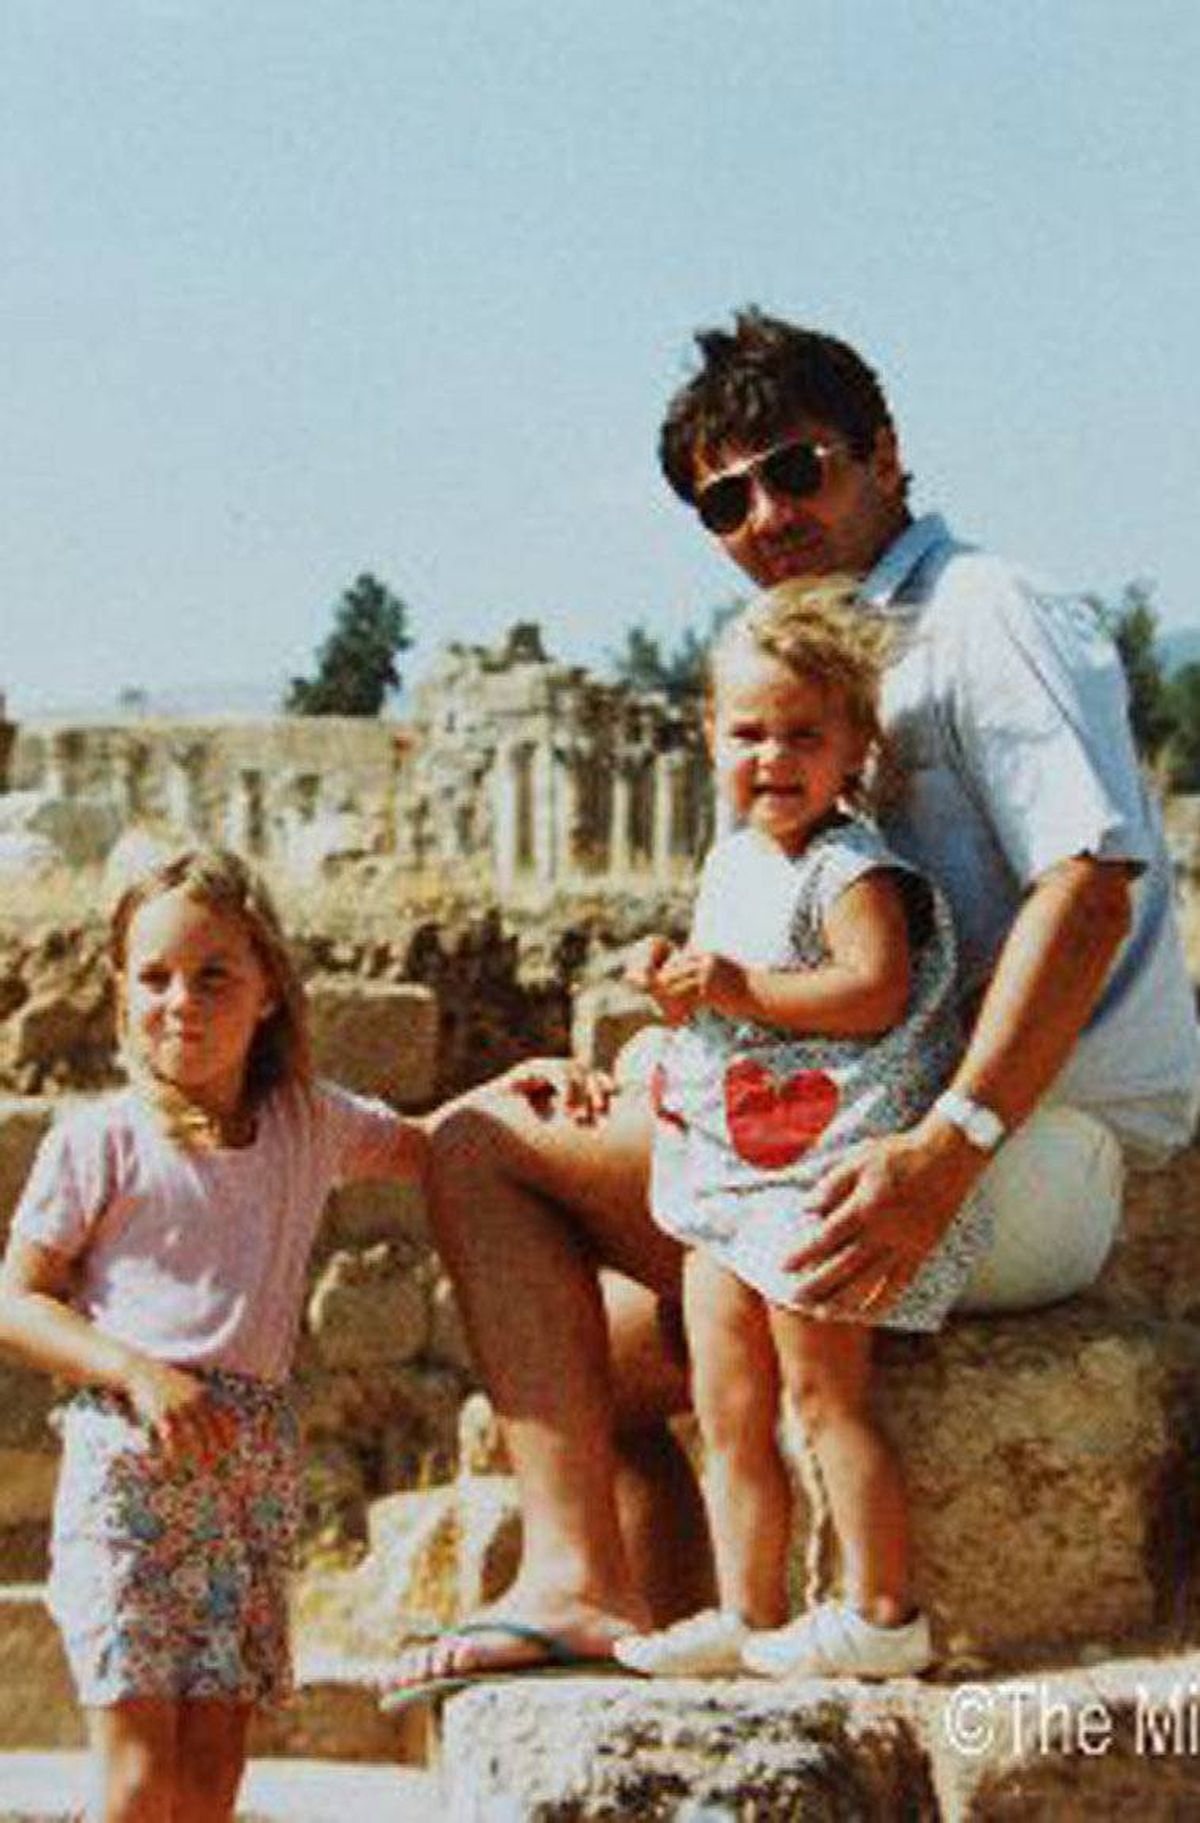 An undated photo of the Middleton family vacationing in Jerash, Jordan. Kate, aged four (L) with sister Pippa and her father Michael.